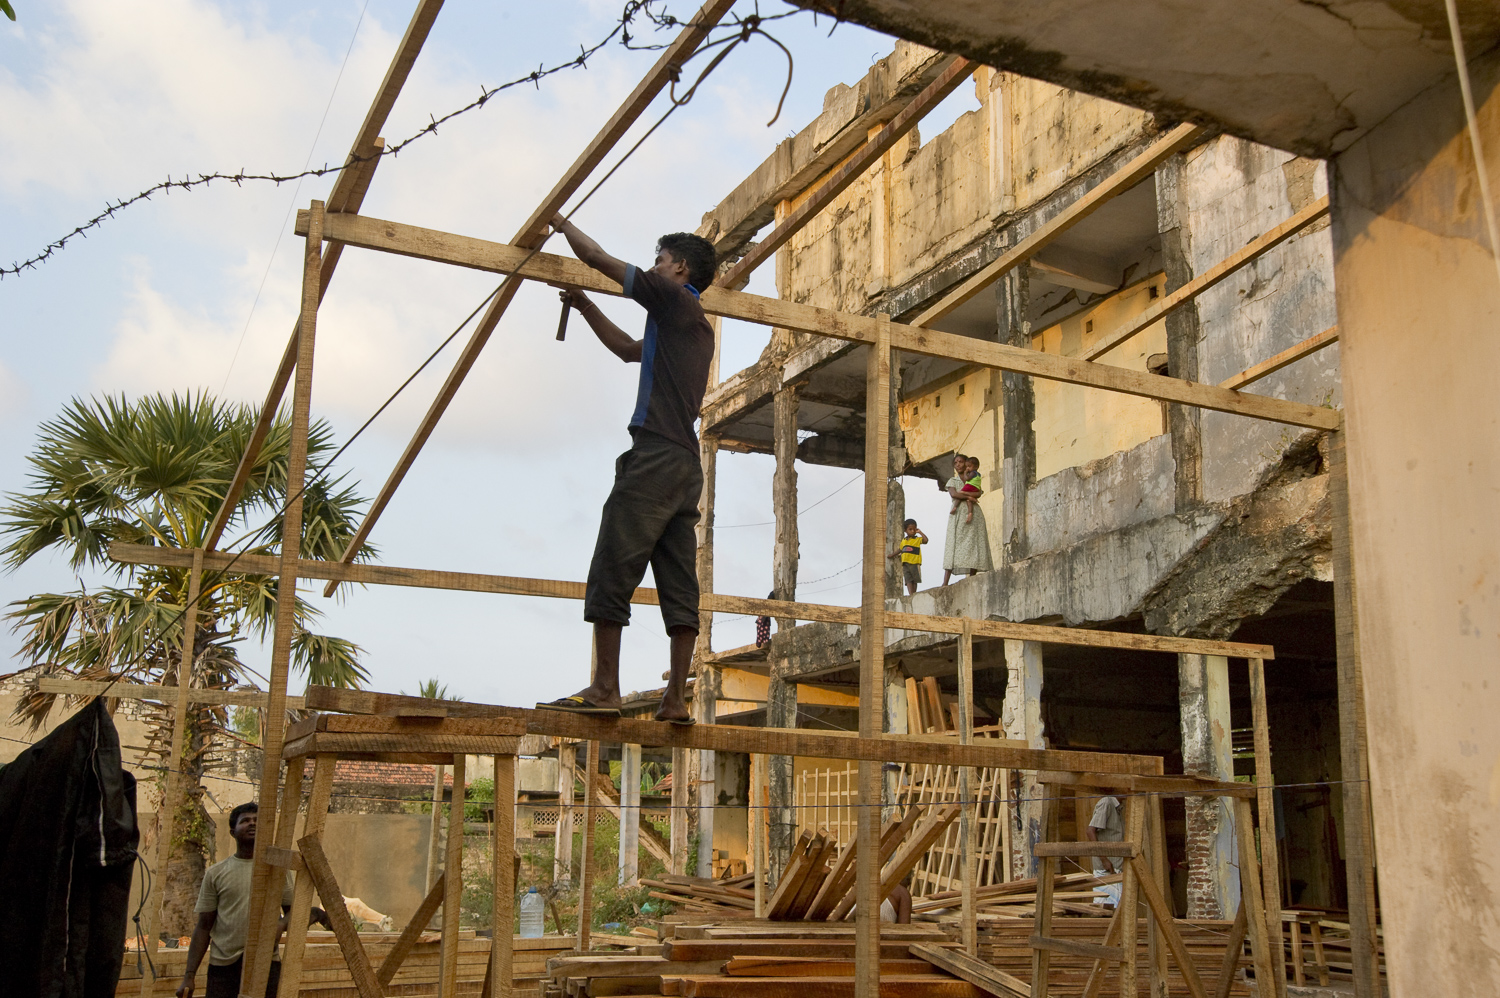 Near downtown Jaffna, locals construct a wood-shed in the remnants of war-destroyed housing. As new building materials are imported from the south, Jaffna is showing signs of development and new investments.